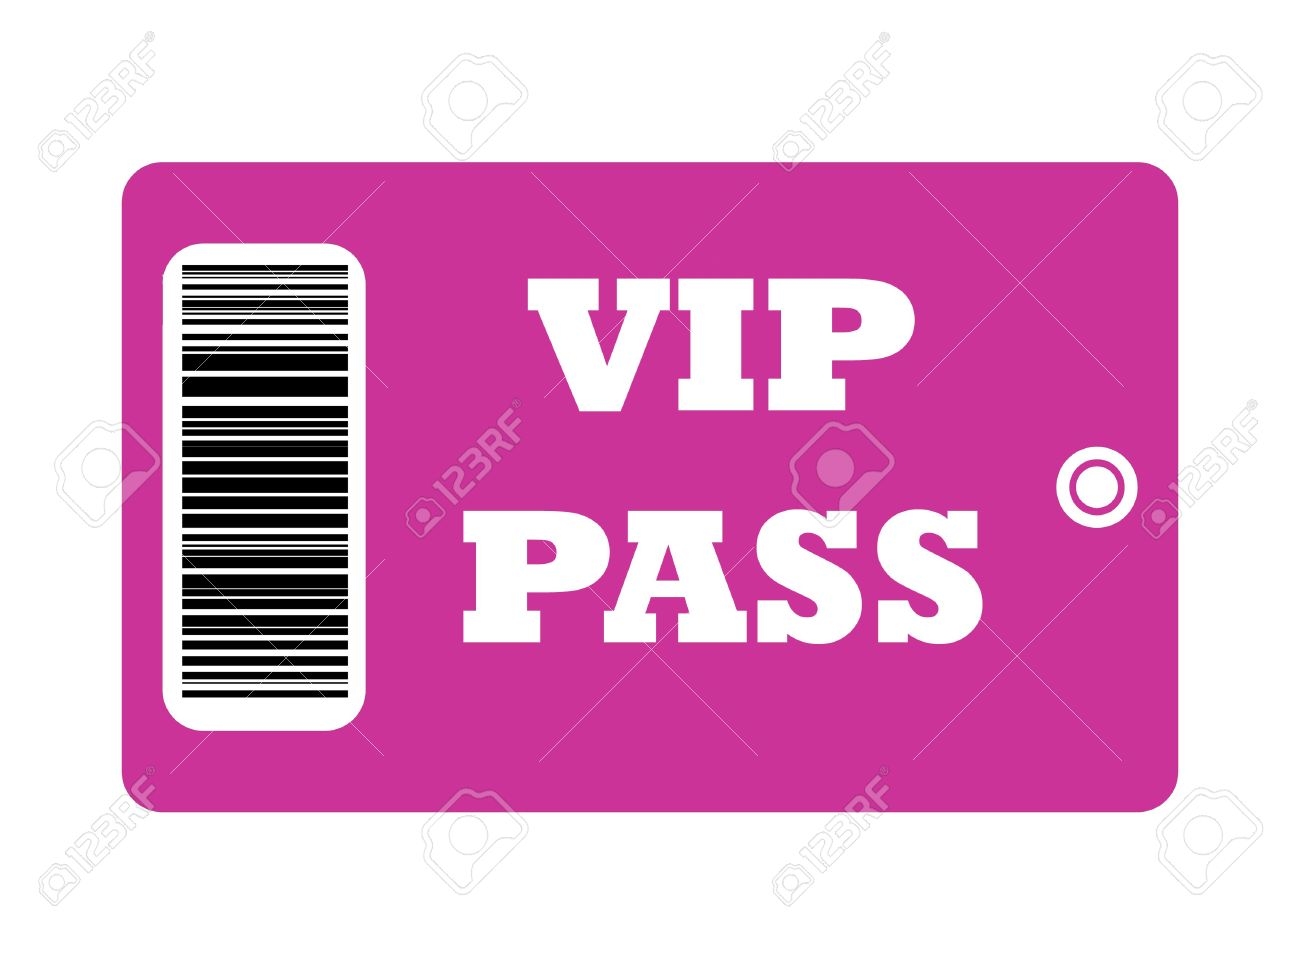 Vip Pass Stock Photo - VIP Pass with